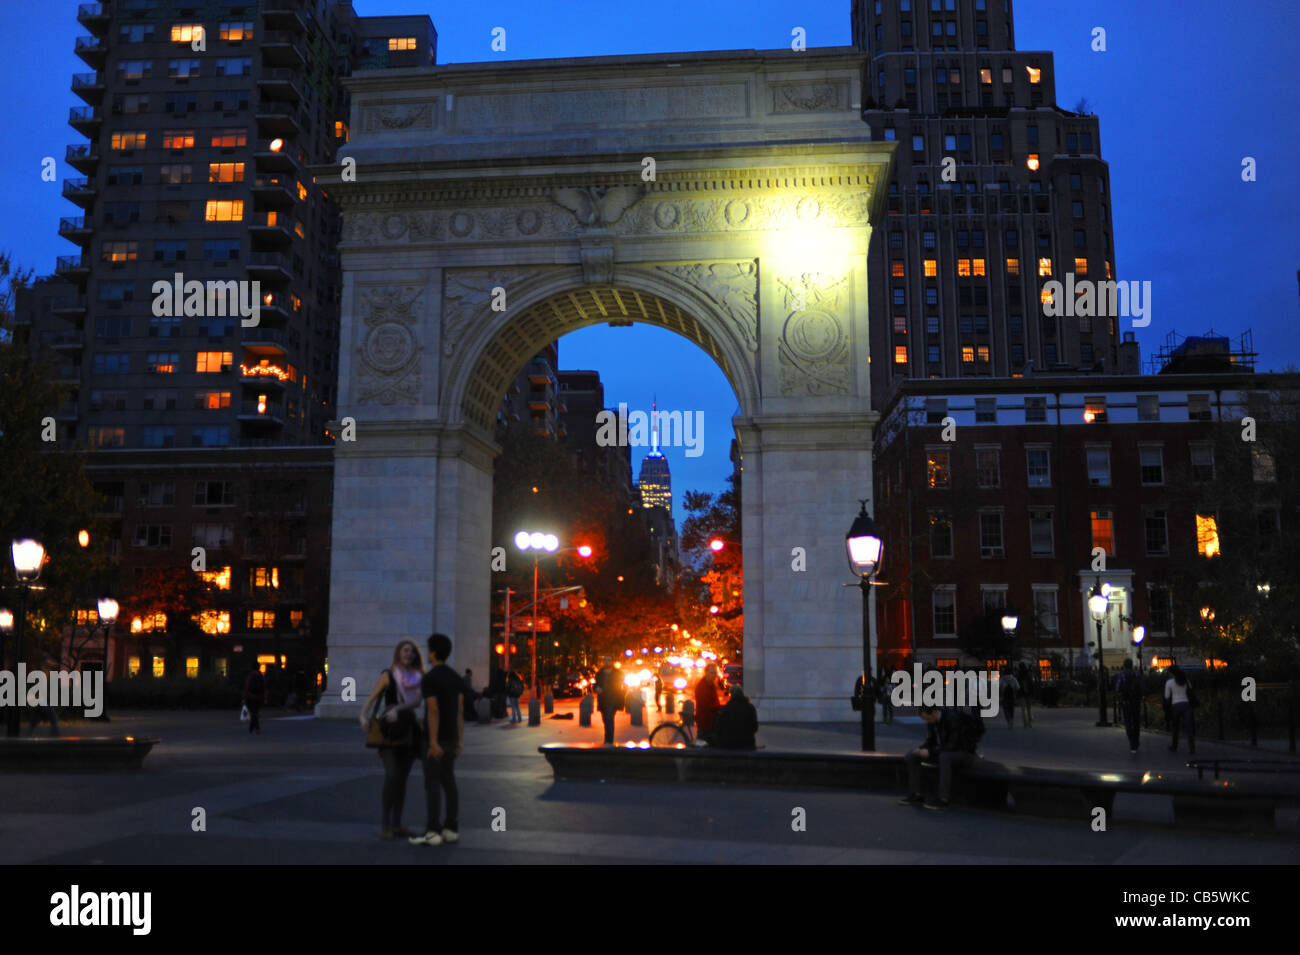 Arch with Empire State Building in distance lit up at Night in Washington Square Greenwich Village Manhattan New Stock Photo